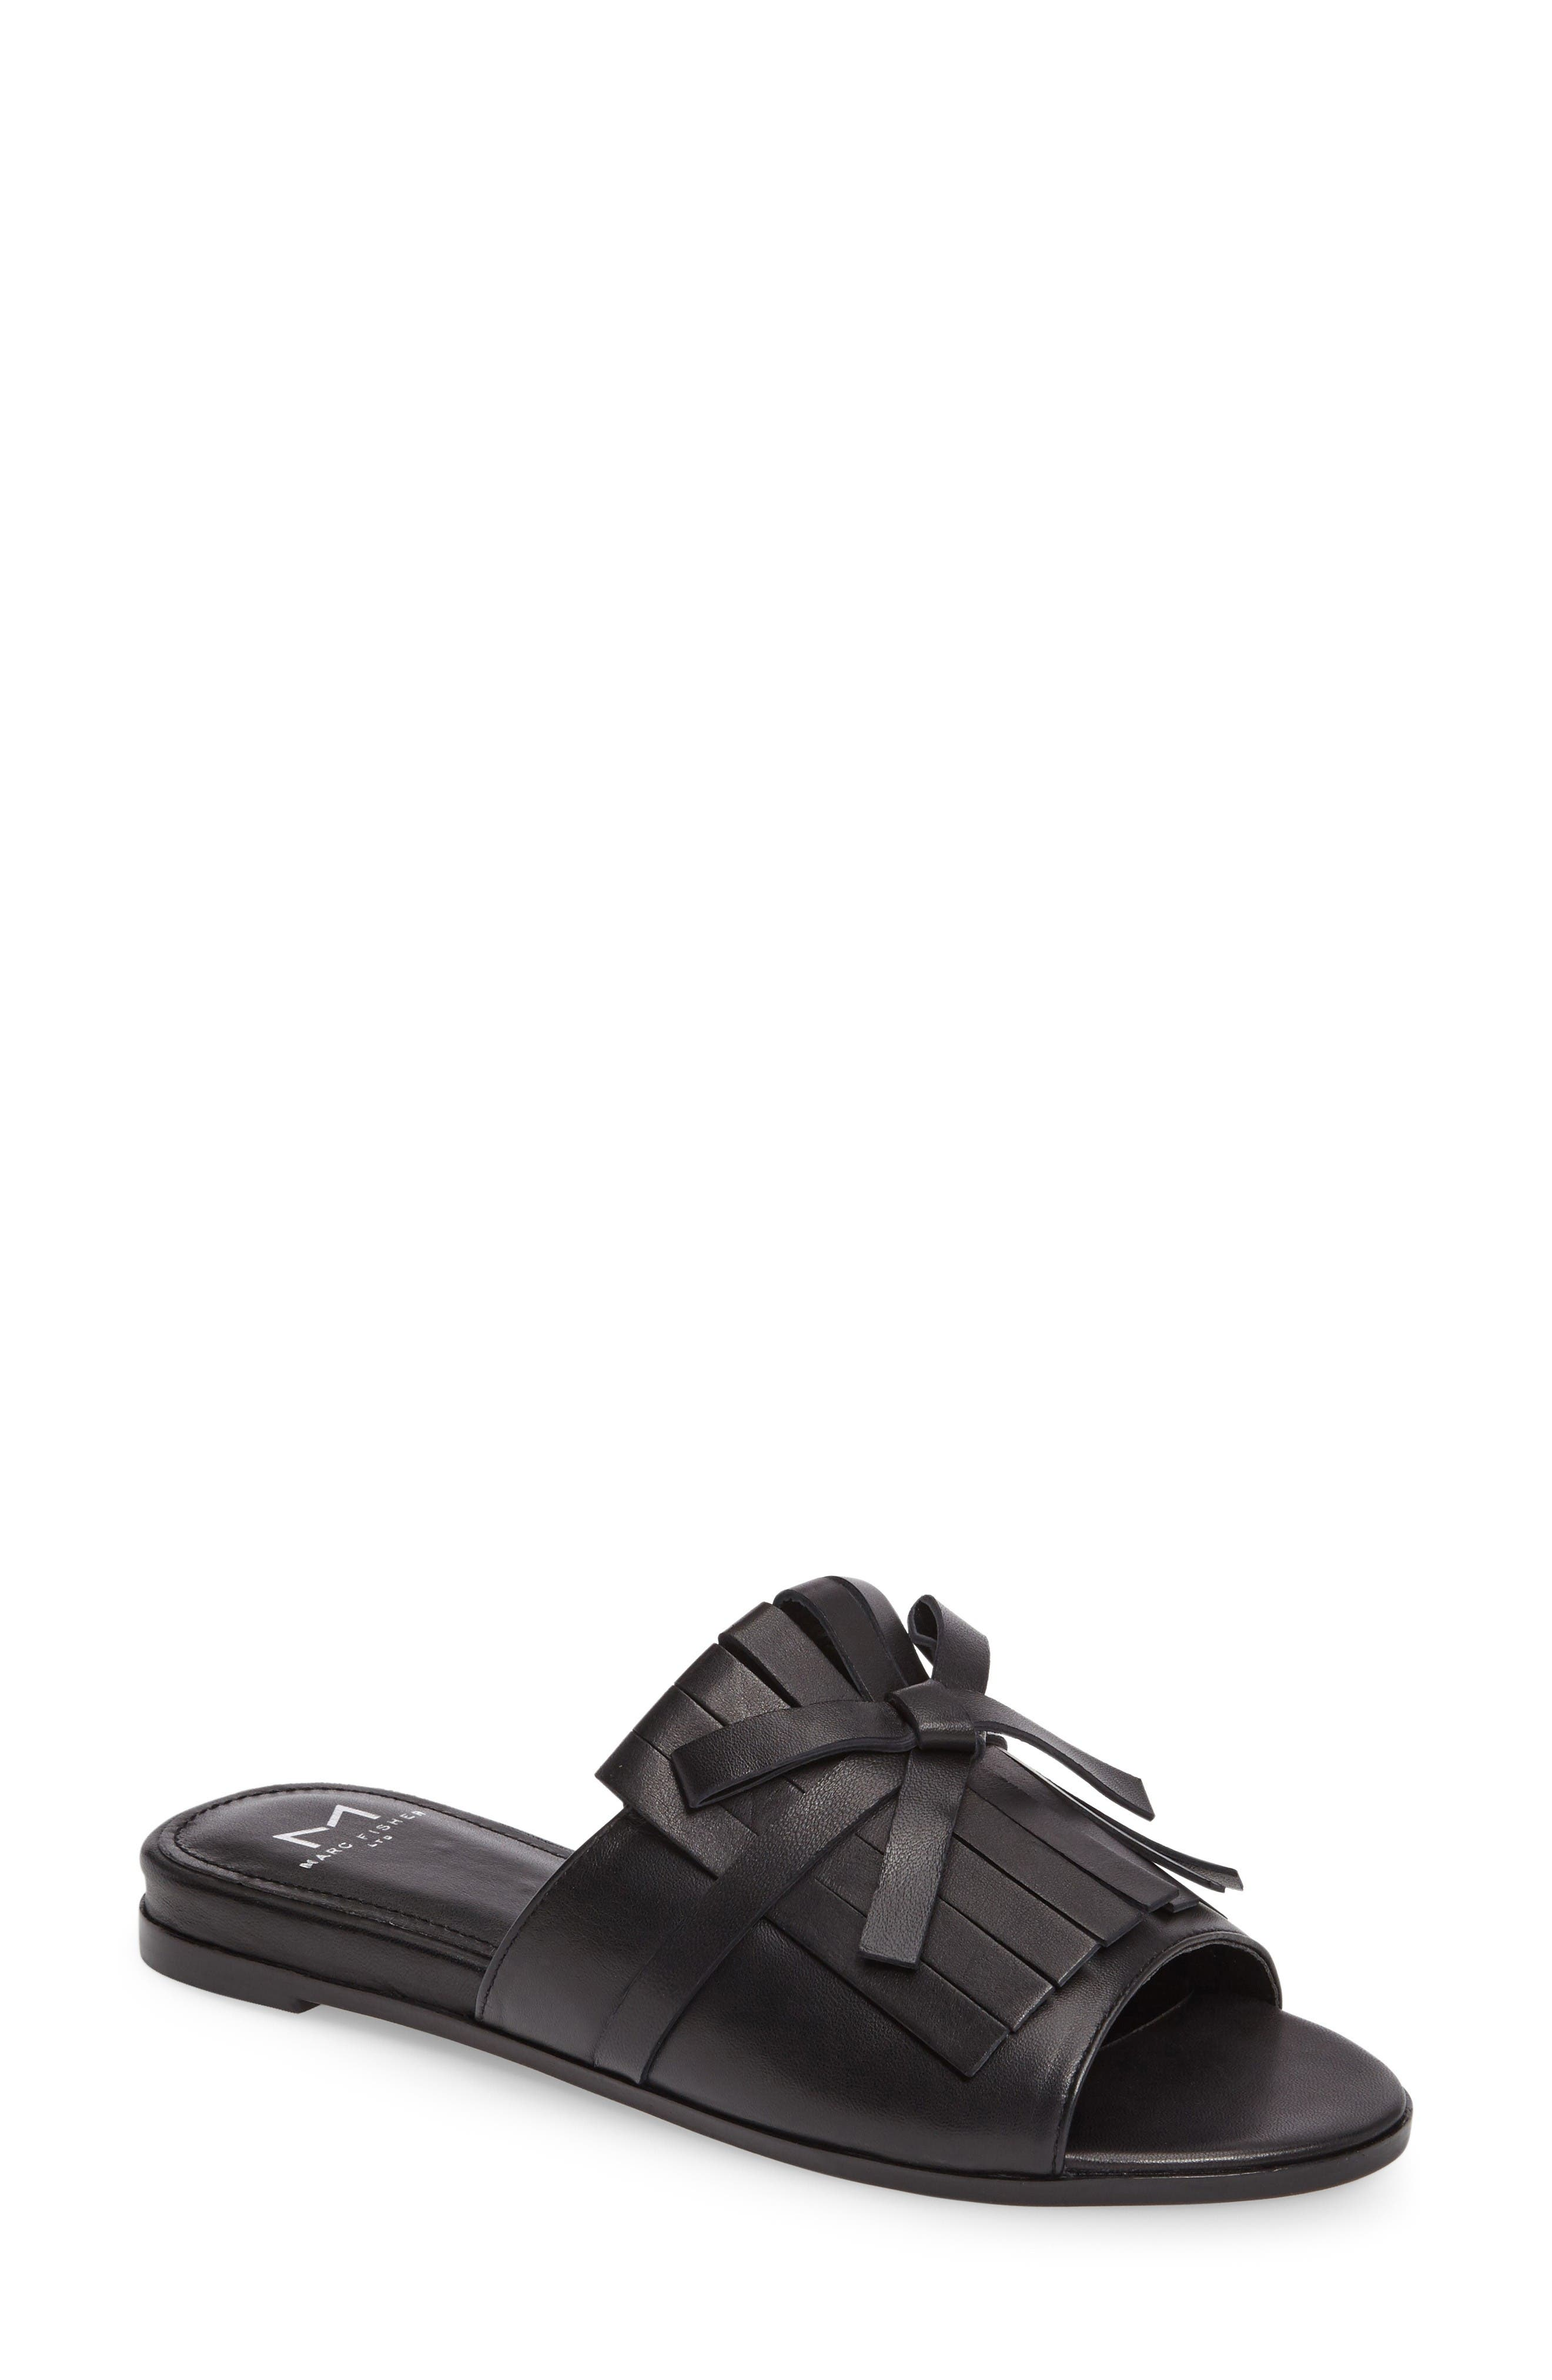 Whitley Slide Sandal,                             Main thumbnail 1, color,                             001